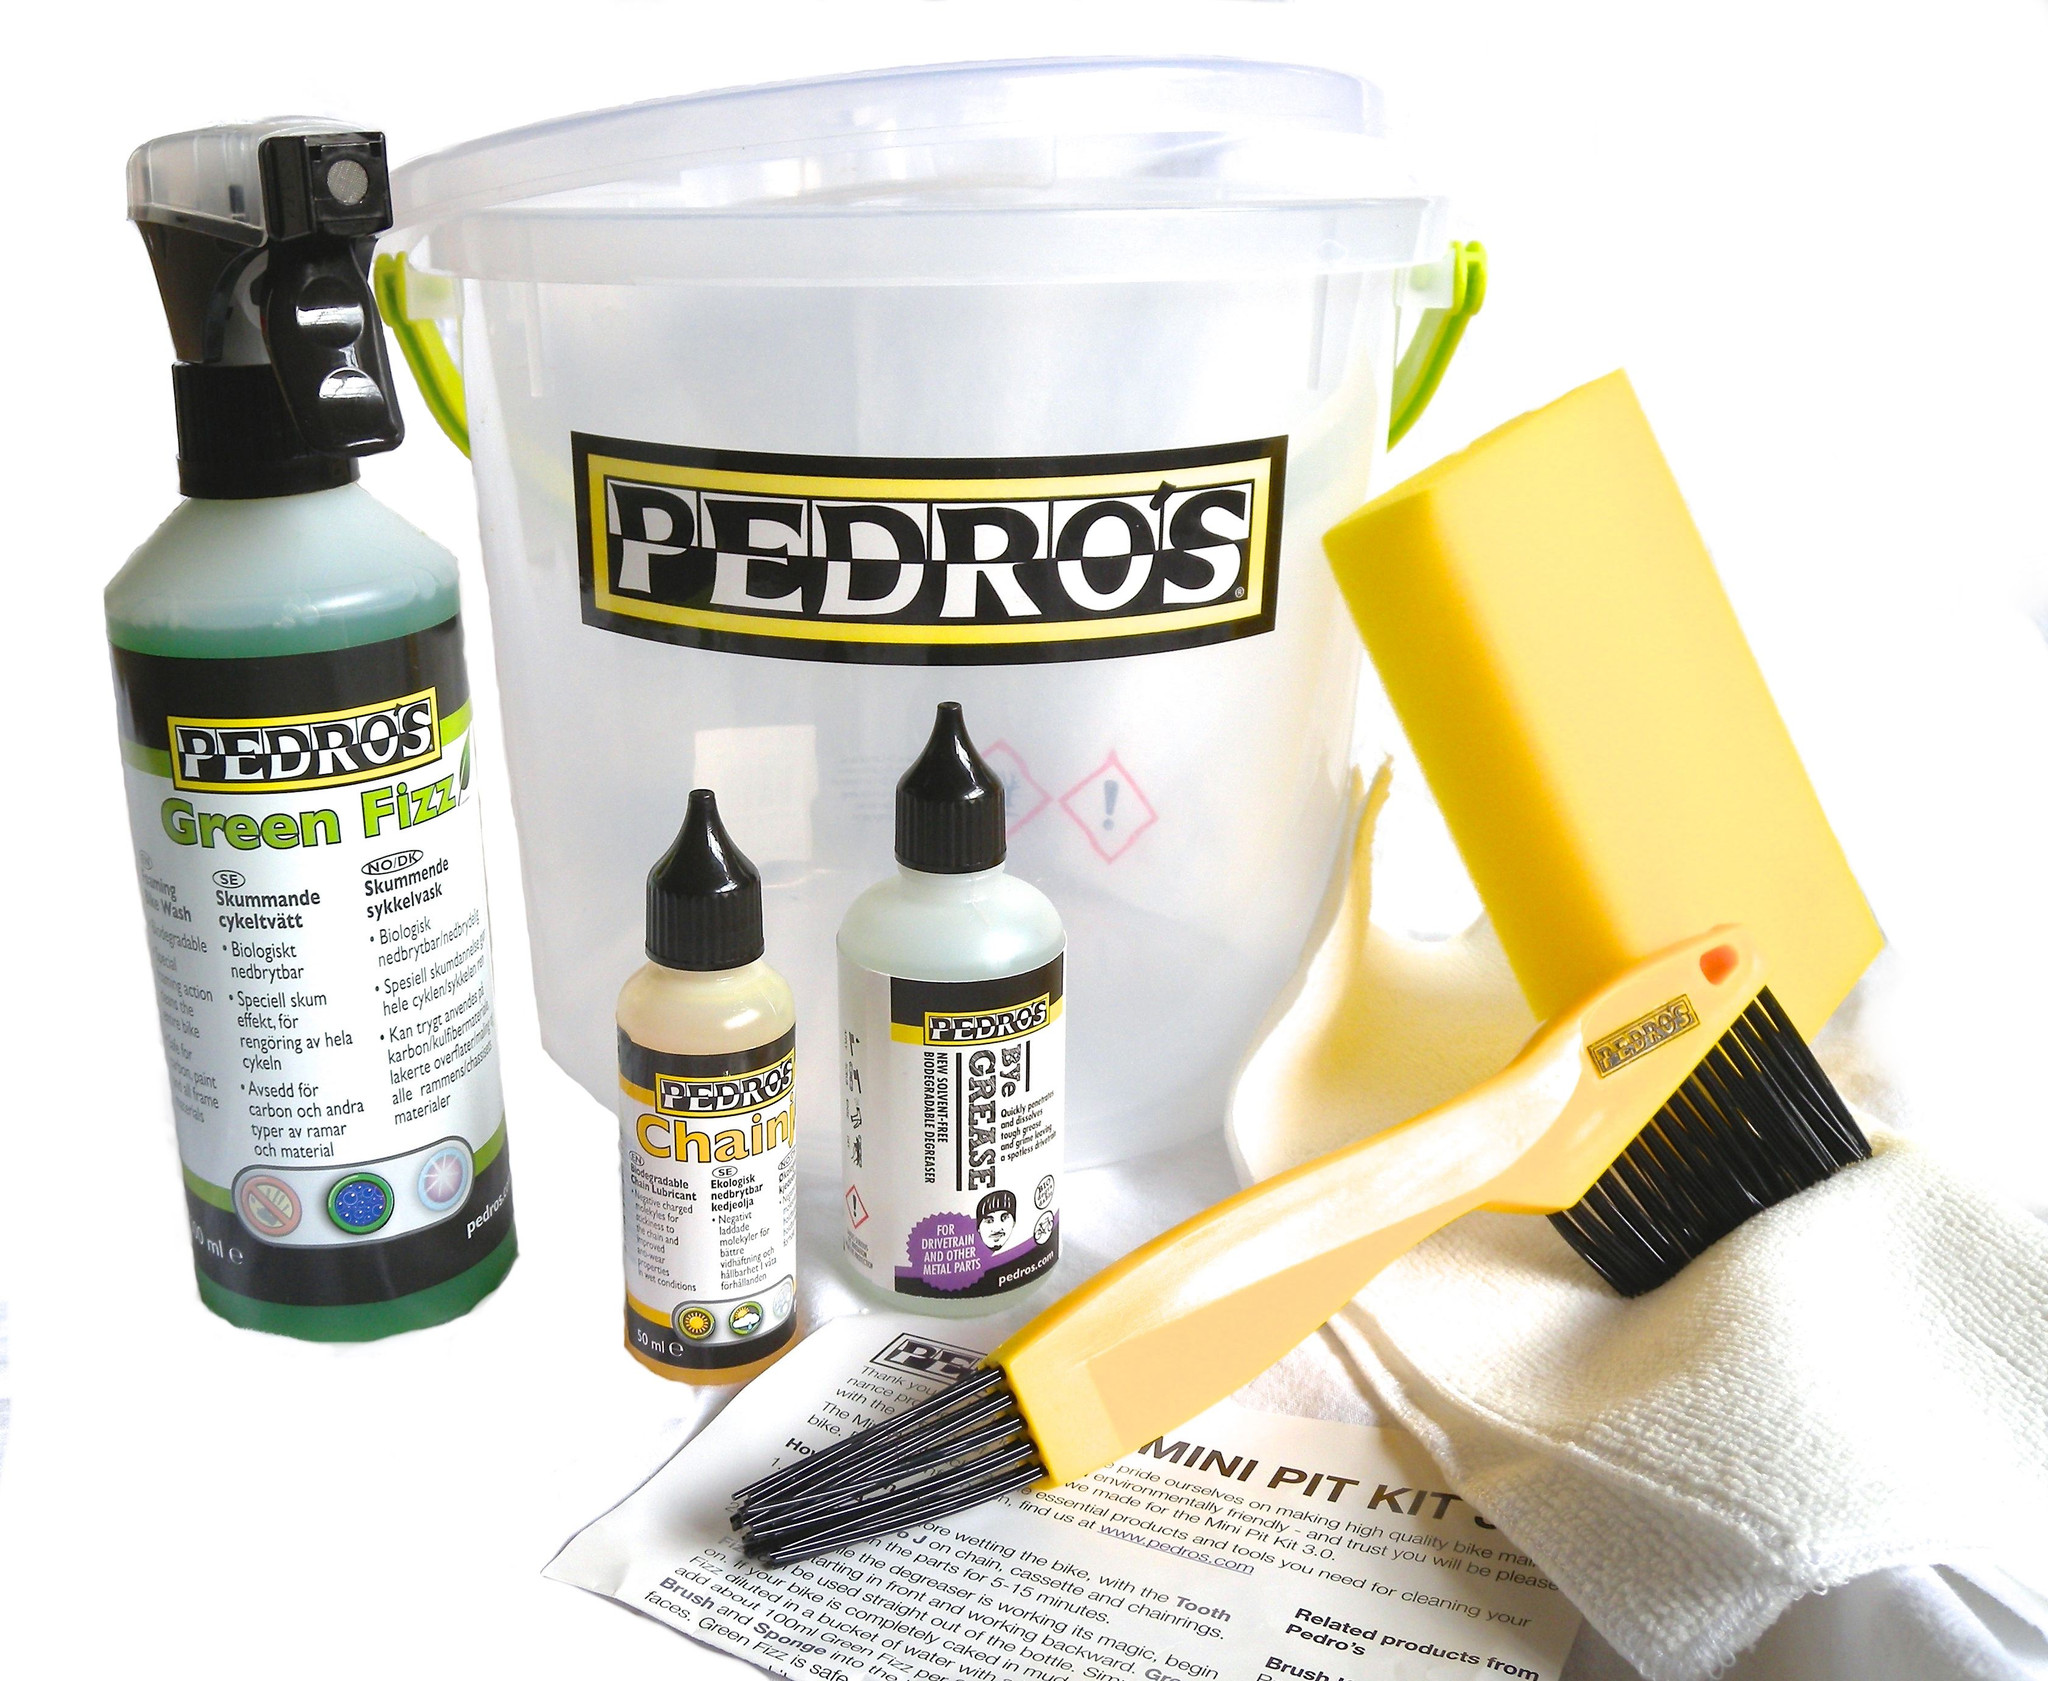 Pedros Mini Pit Kit | polish_and_lubricant_component